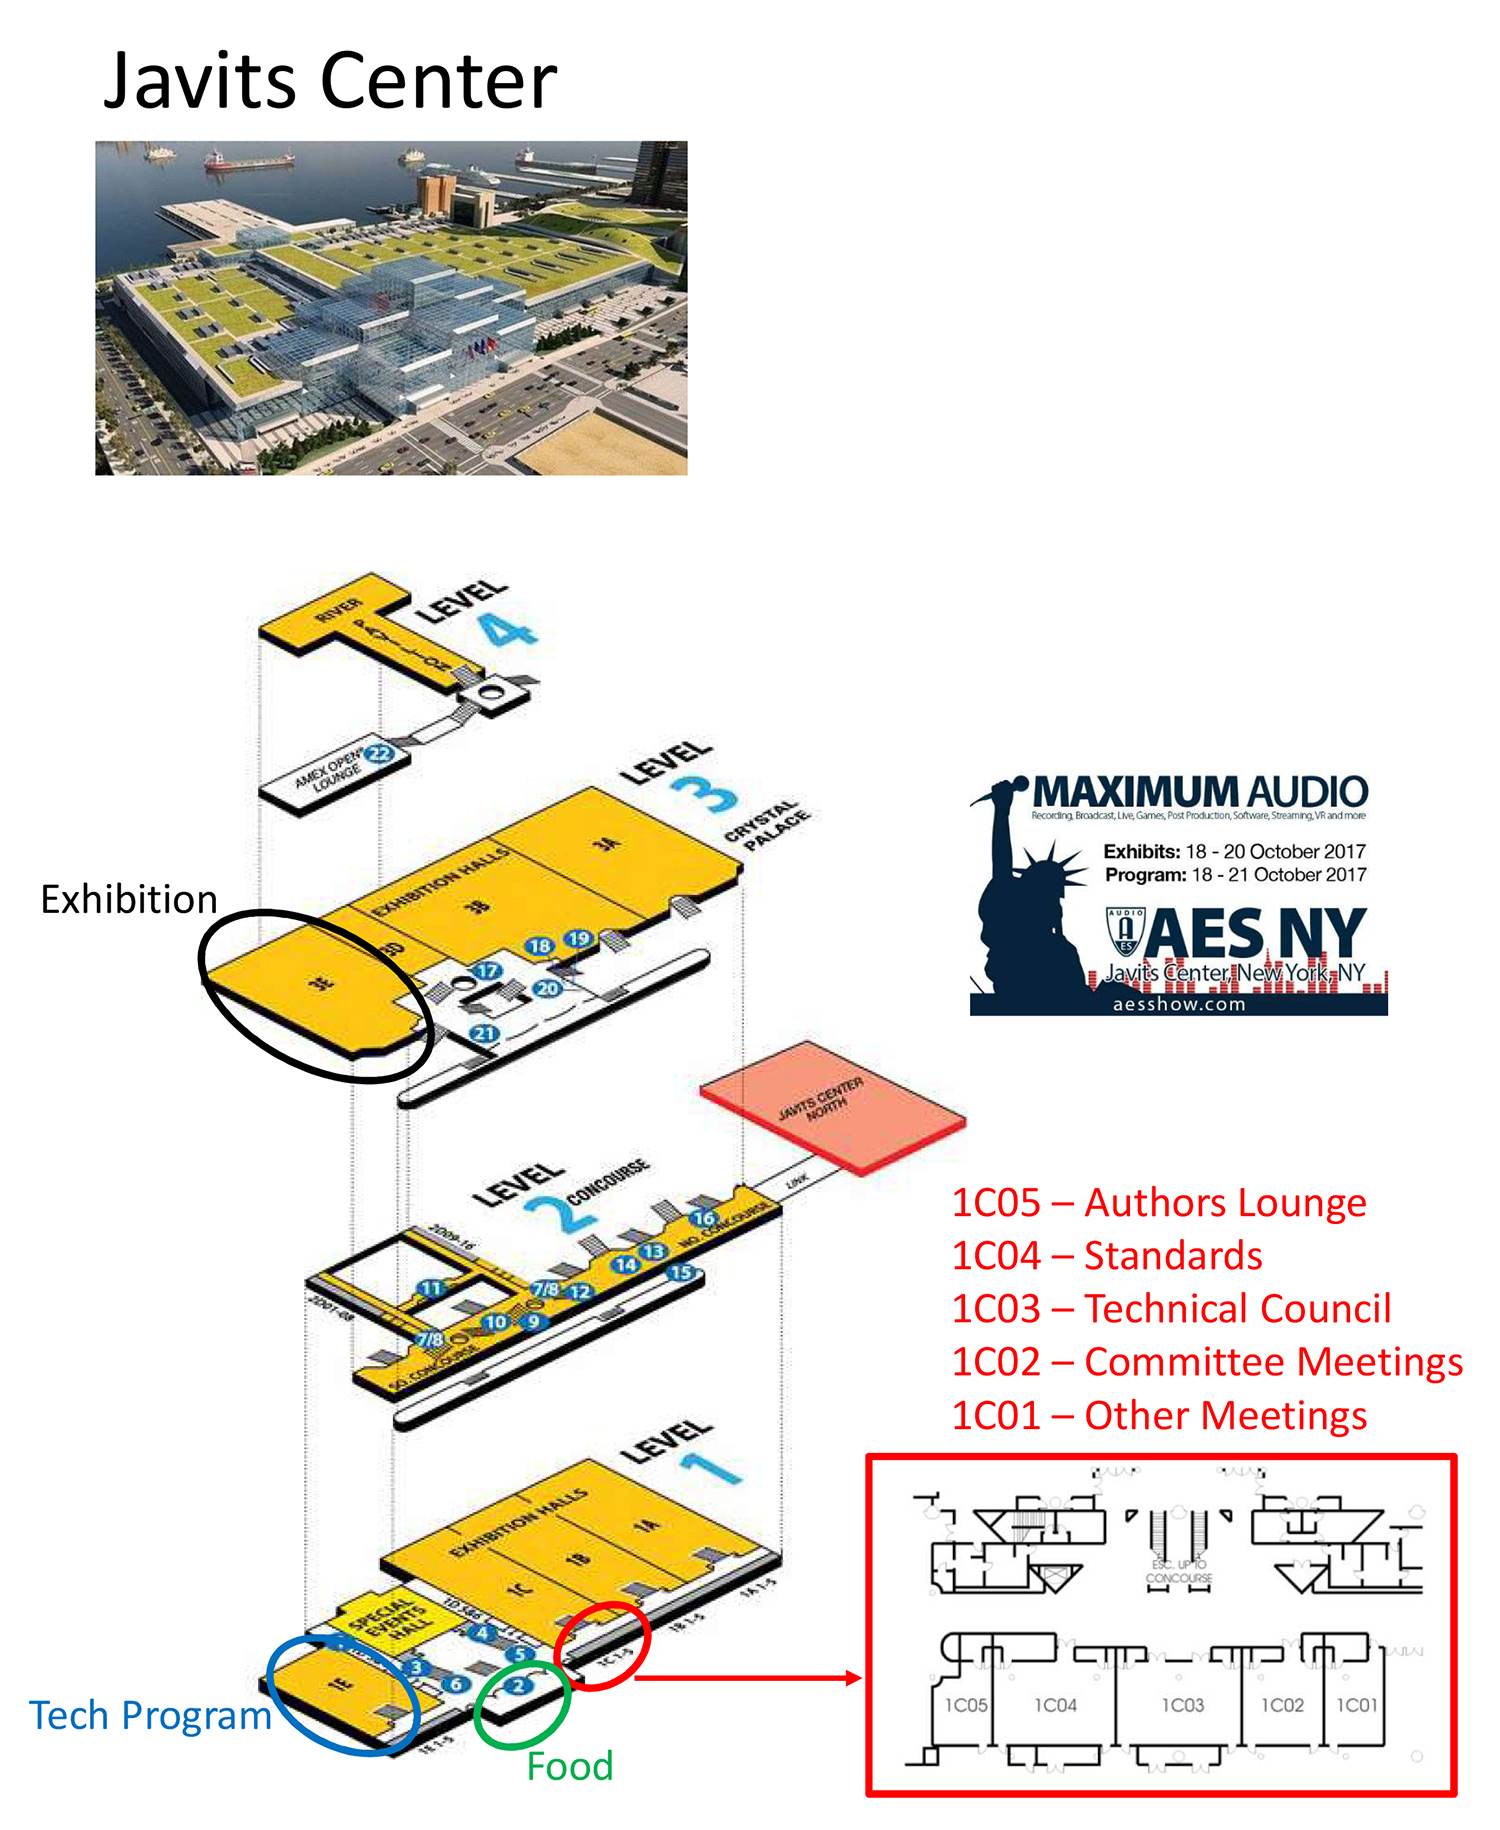 Javits Center Map AES New York 2017 » Map of Javits